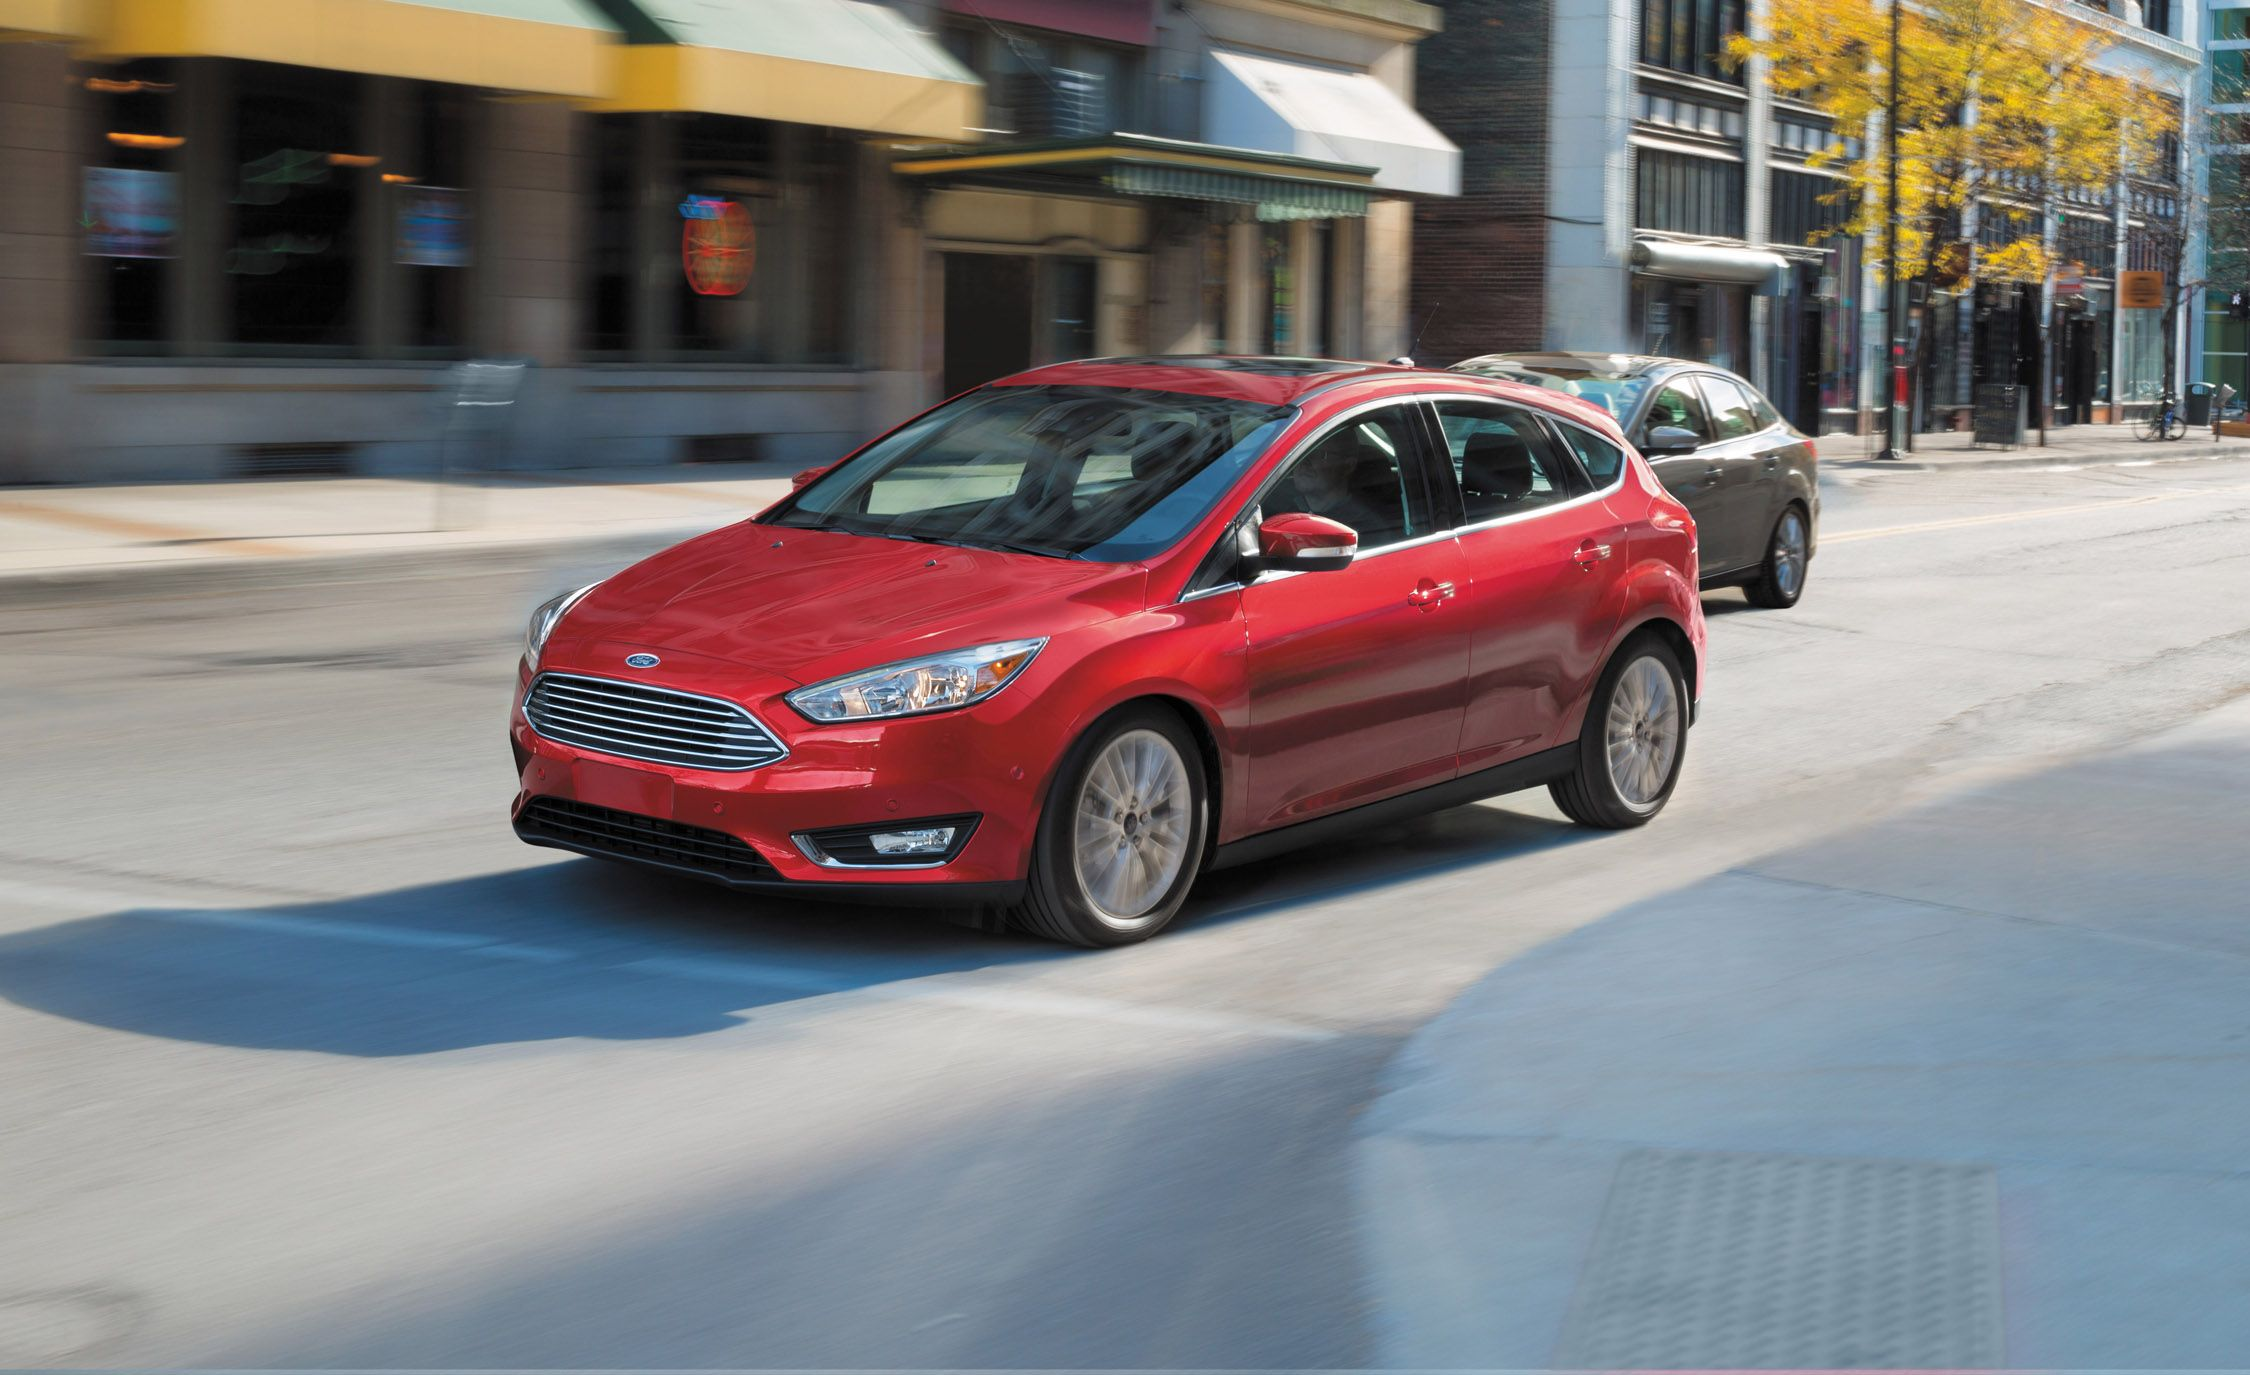 2018 Ford Focus | In-Depth Model Review | Car and Driver